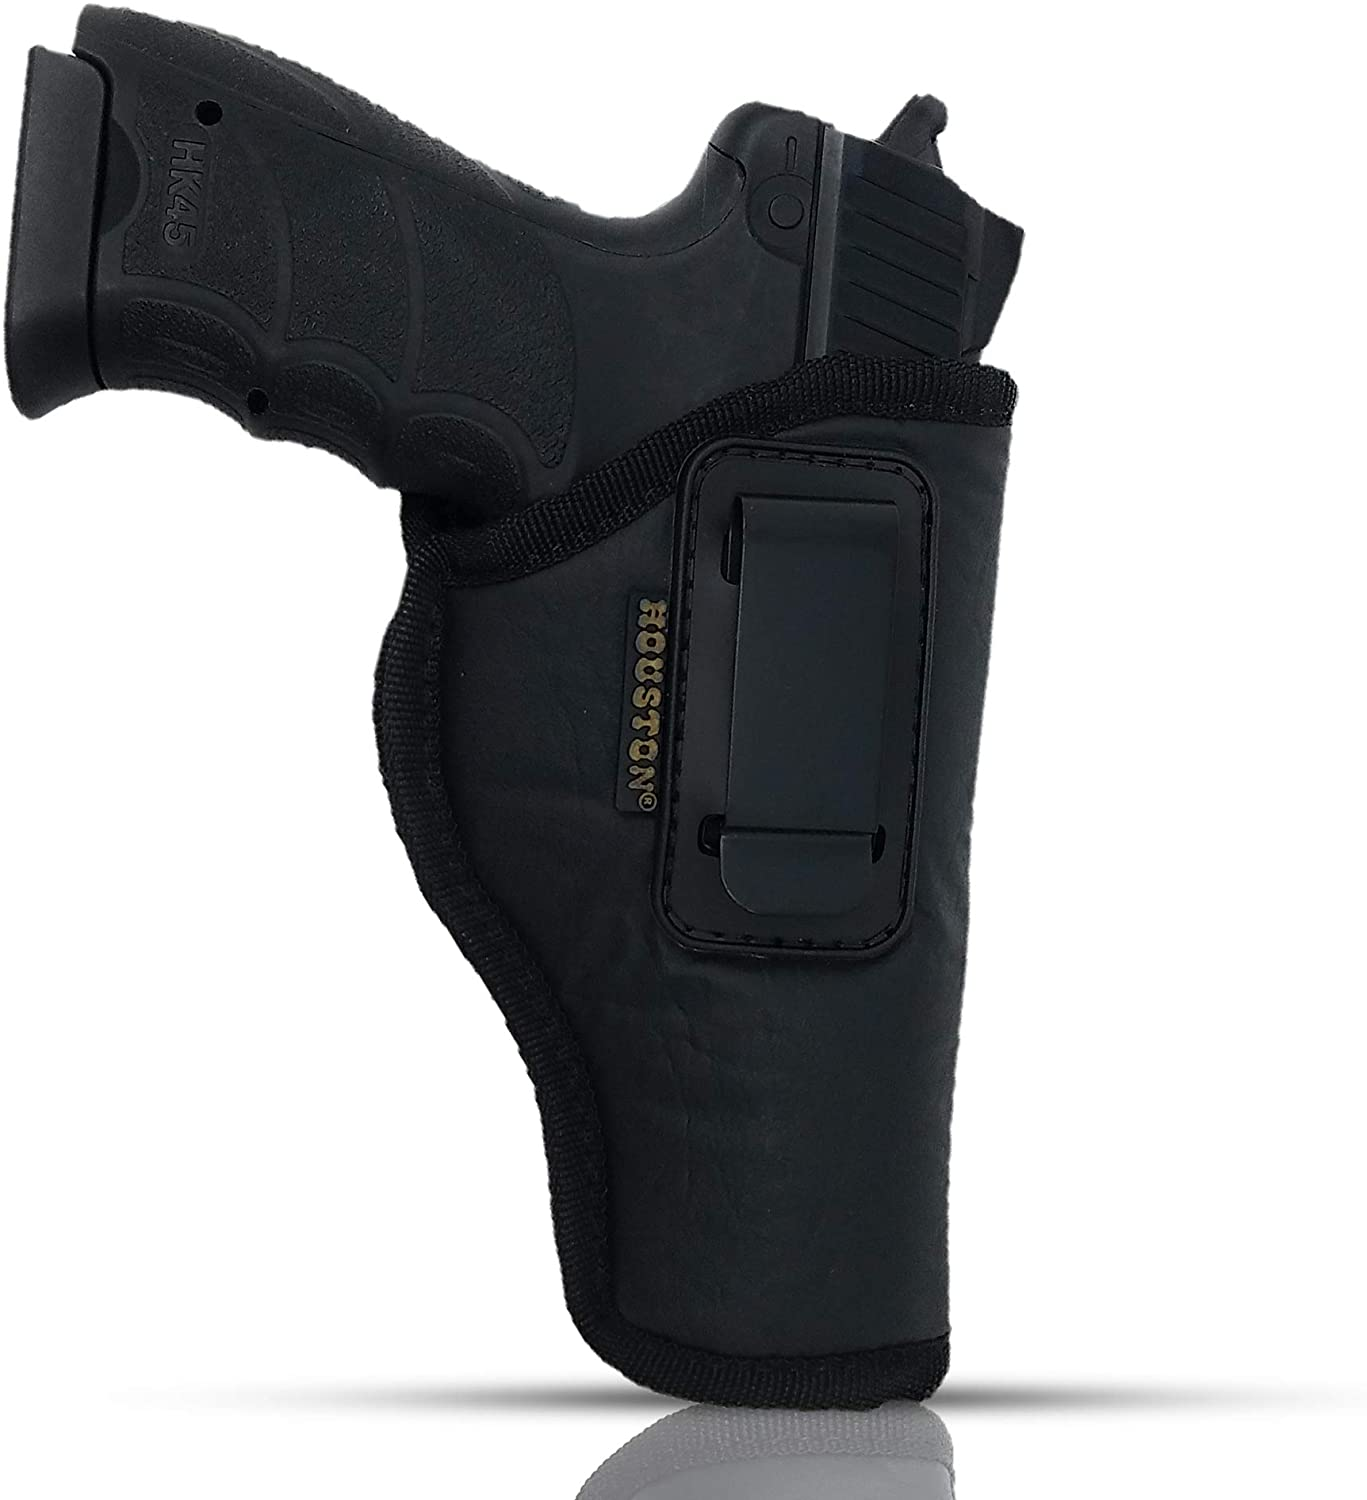 IWB Gun Holster by Houston - ECO Leather Concealment Inside The Waistband with Metal Clip FITS Glock 17/21, H &K,Beretta 92 FS,XDM,Ruger 45, BERSA PRO, PX4, FNX 45, FNH 45, HI Point 9mm /. 40 /.45Cal